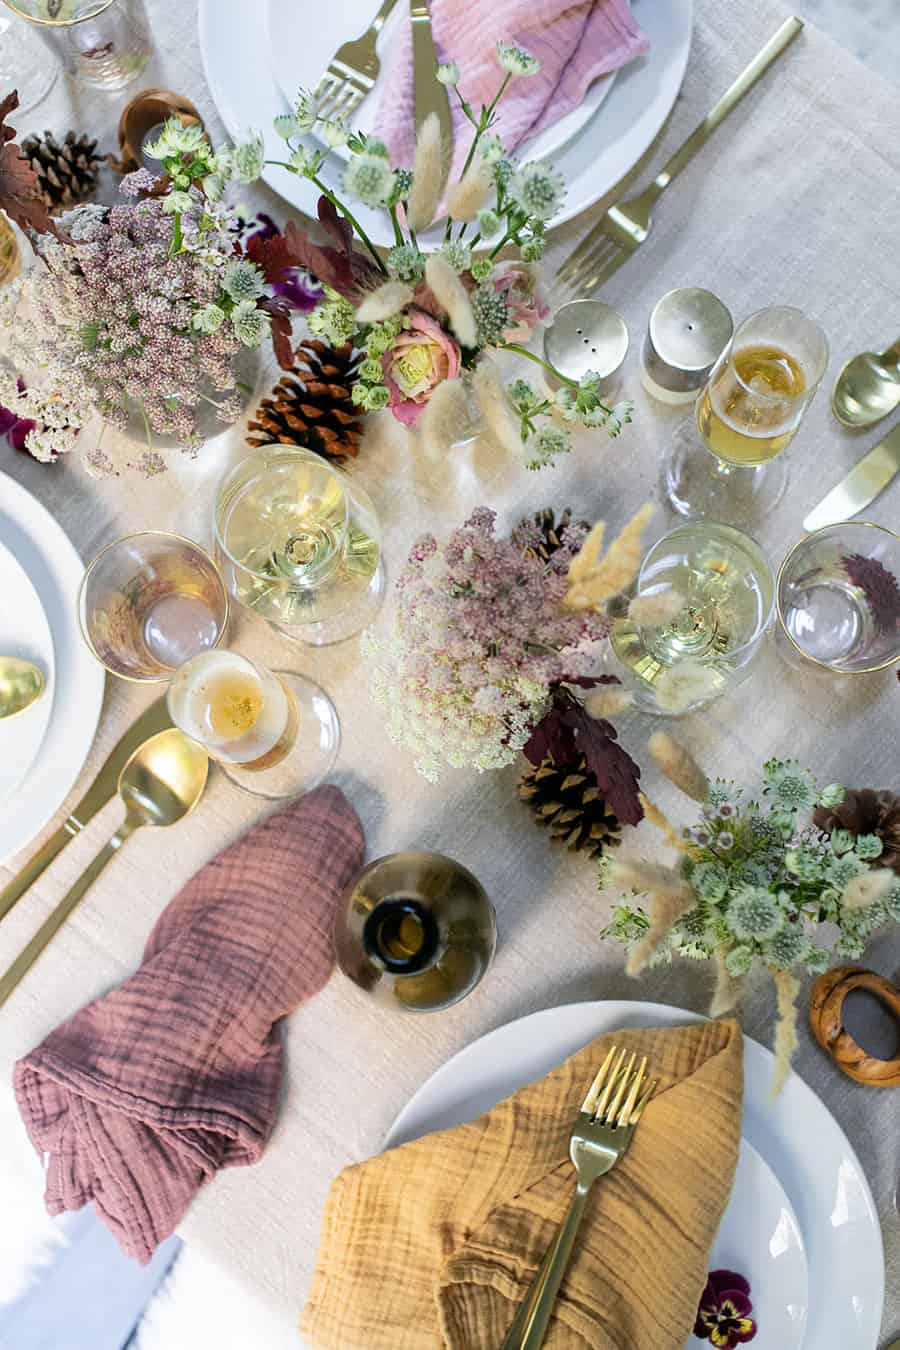 Thanksgiving table setting with flowers, wine and Champagne